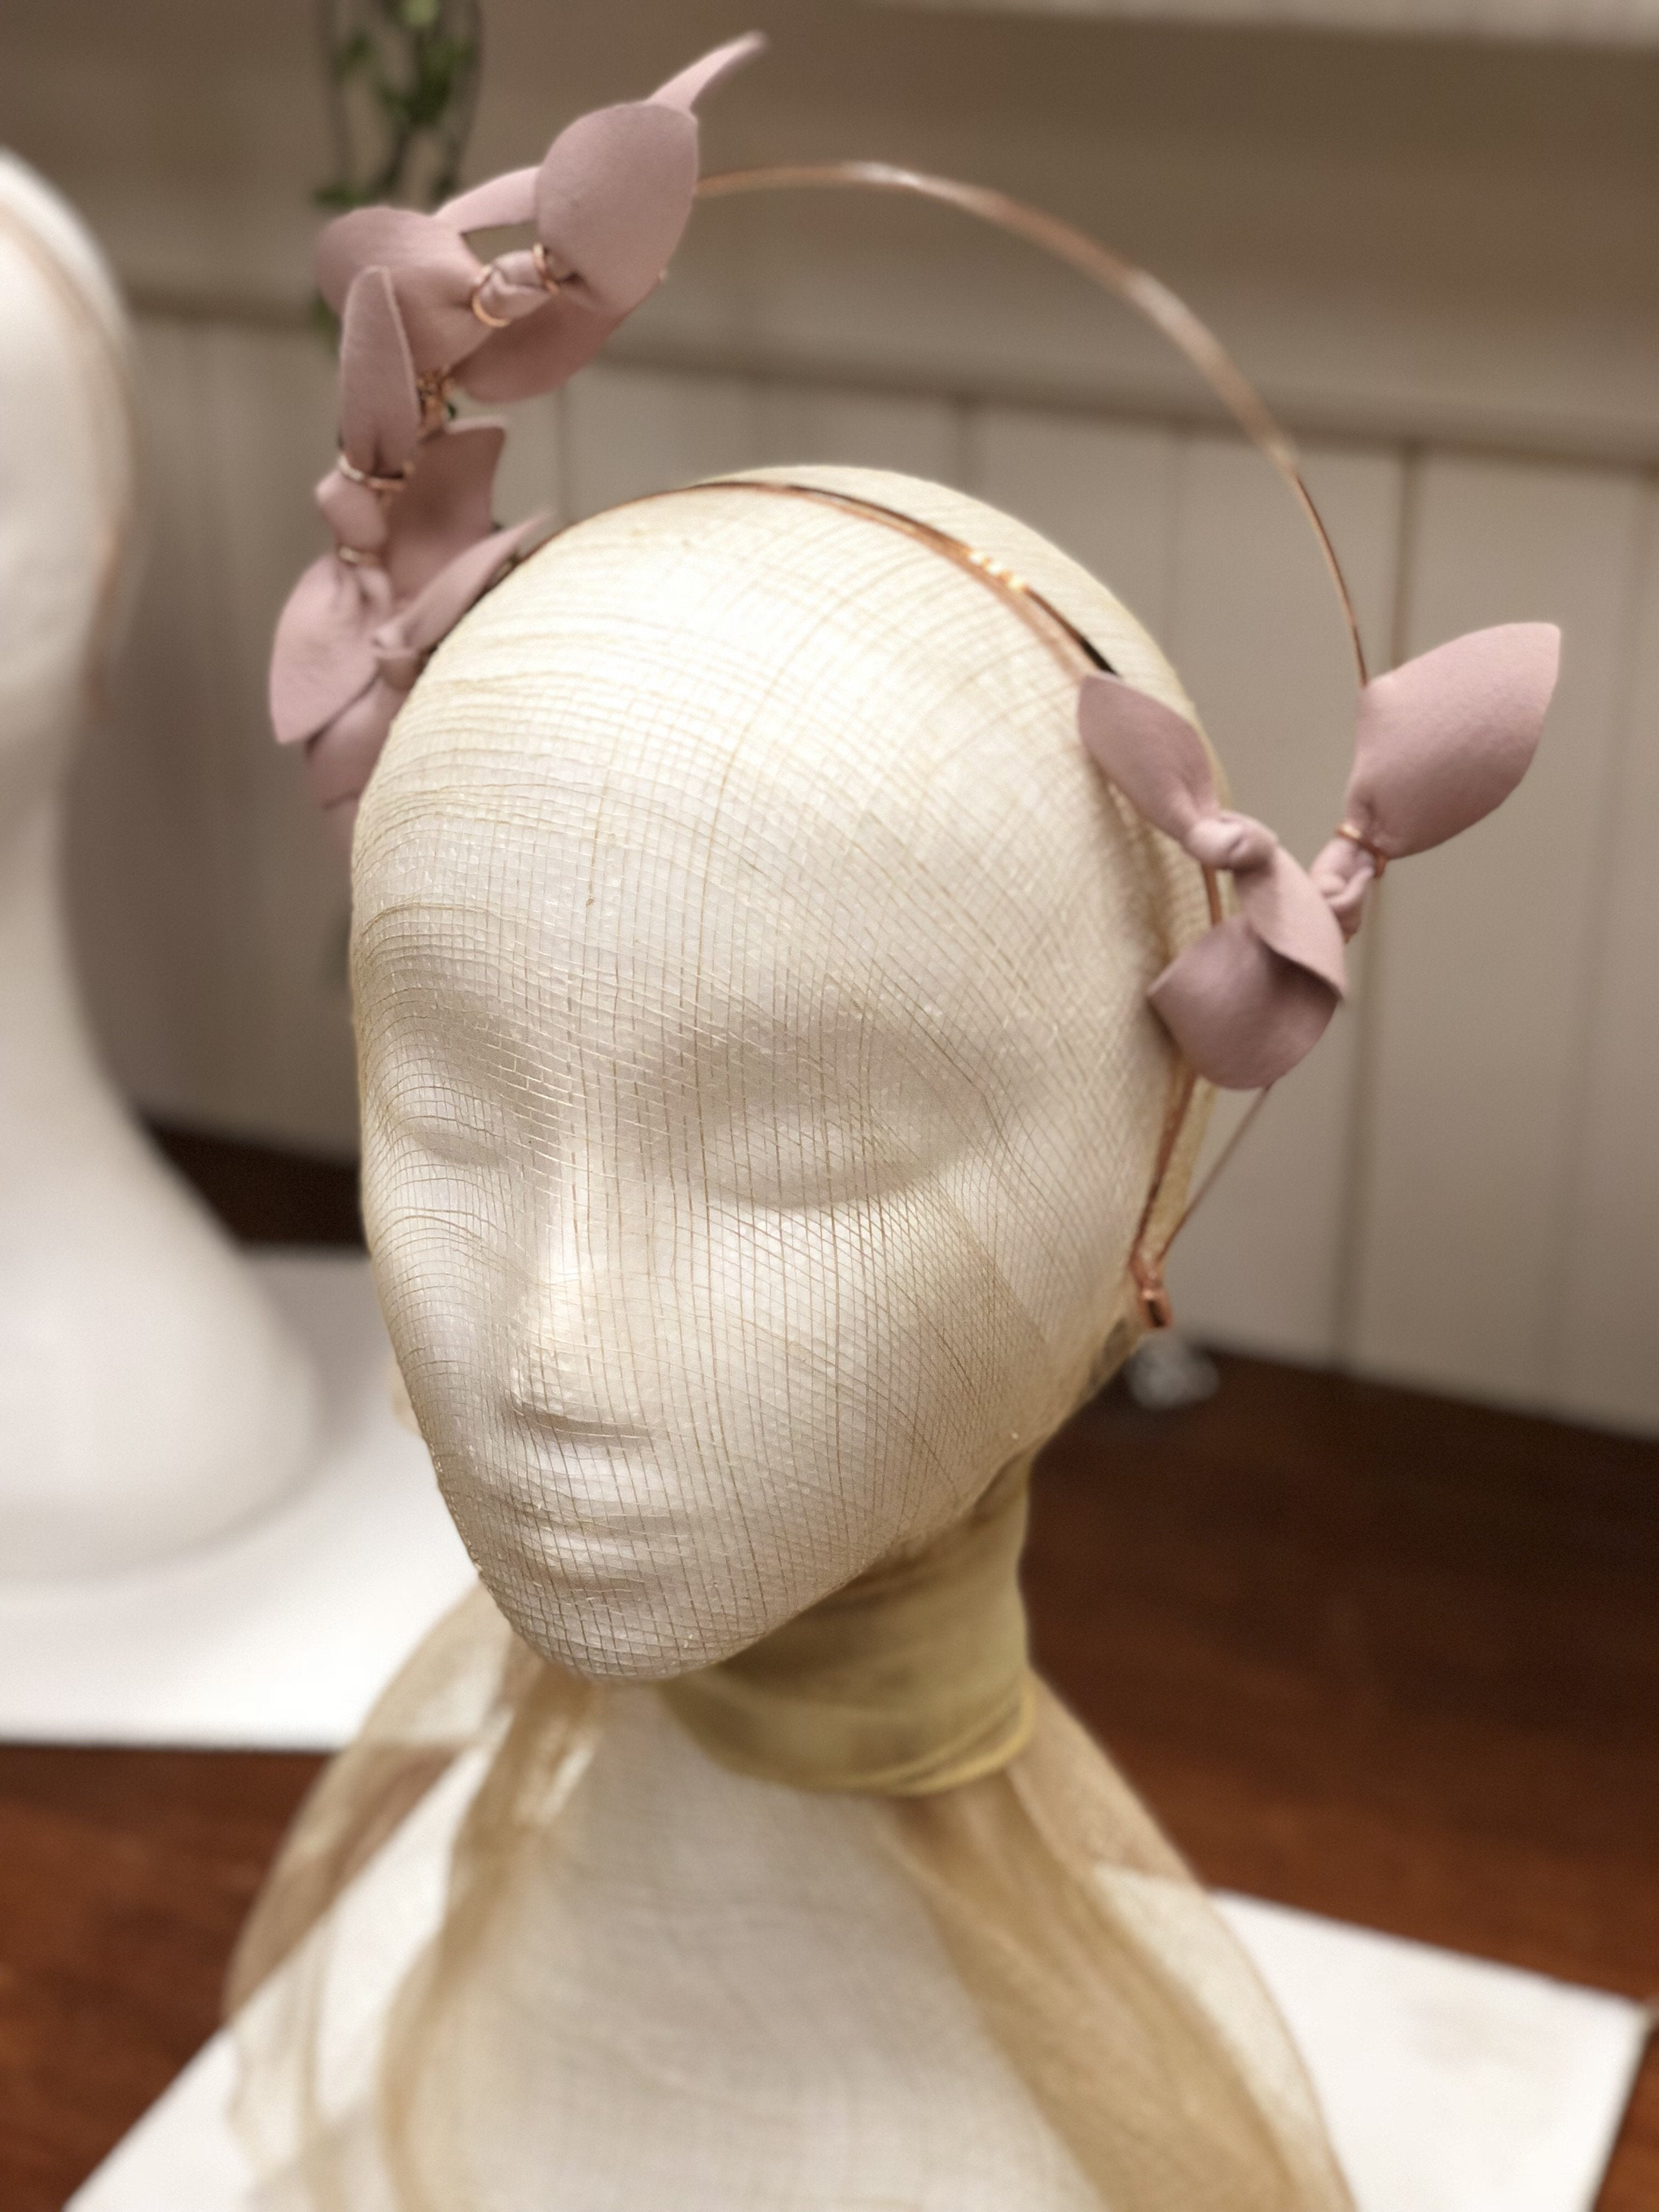 Fleur Cuir Delicate Bows Halo Headband in Pale Pink Leather & Rose Gold - Lookbook Boutique